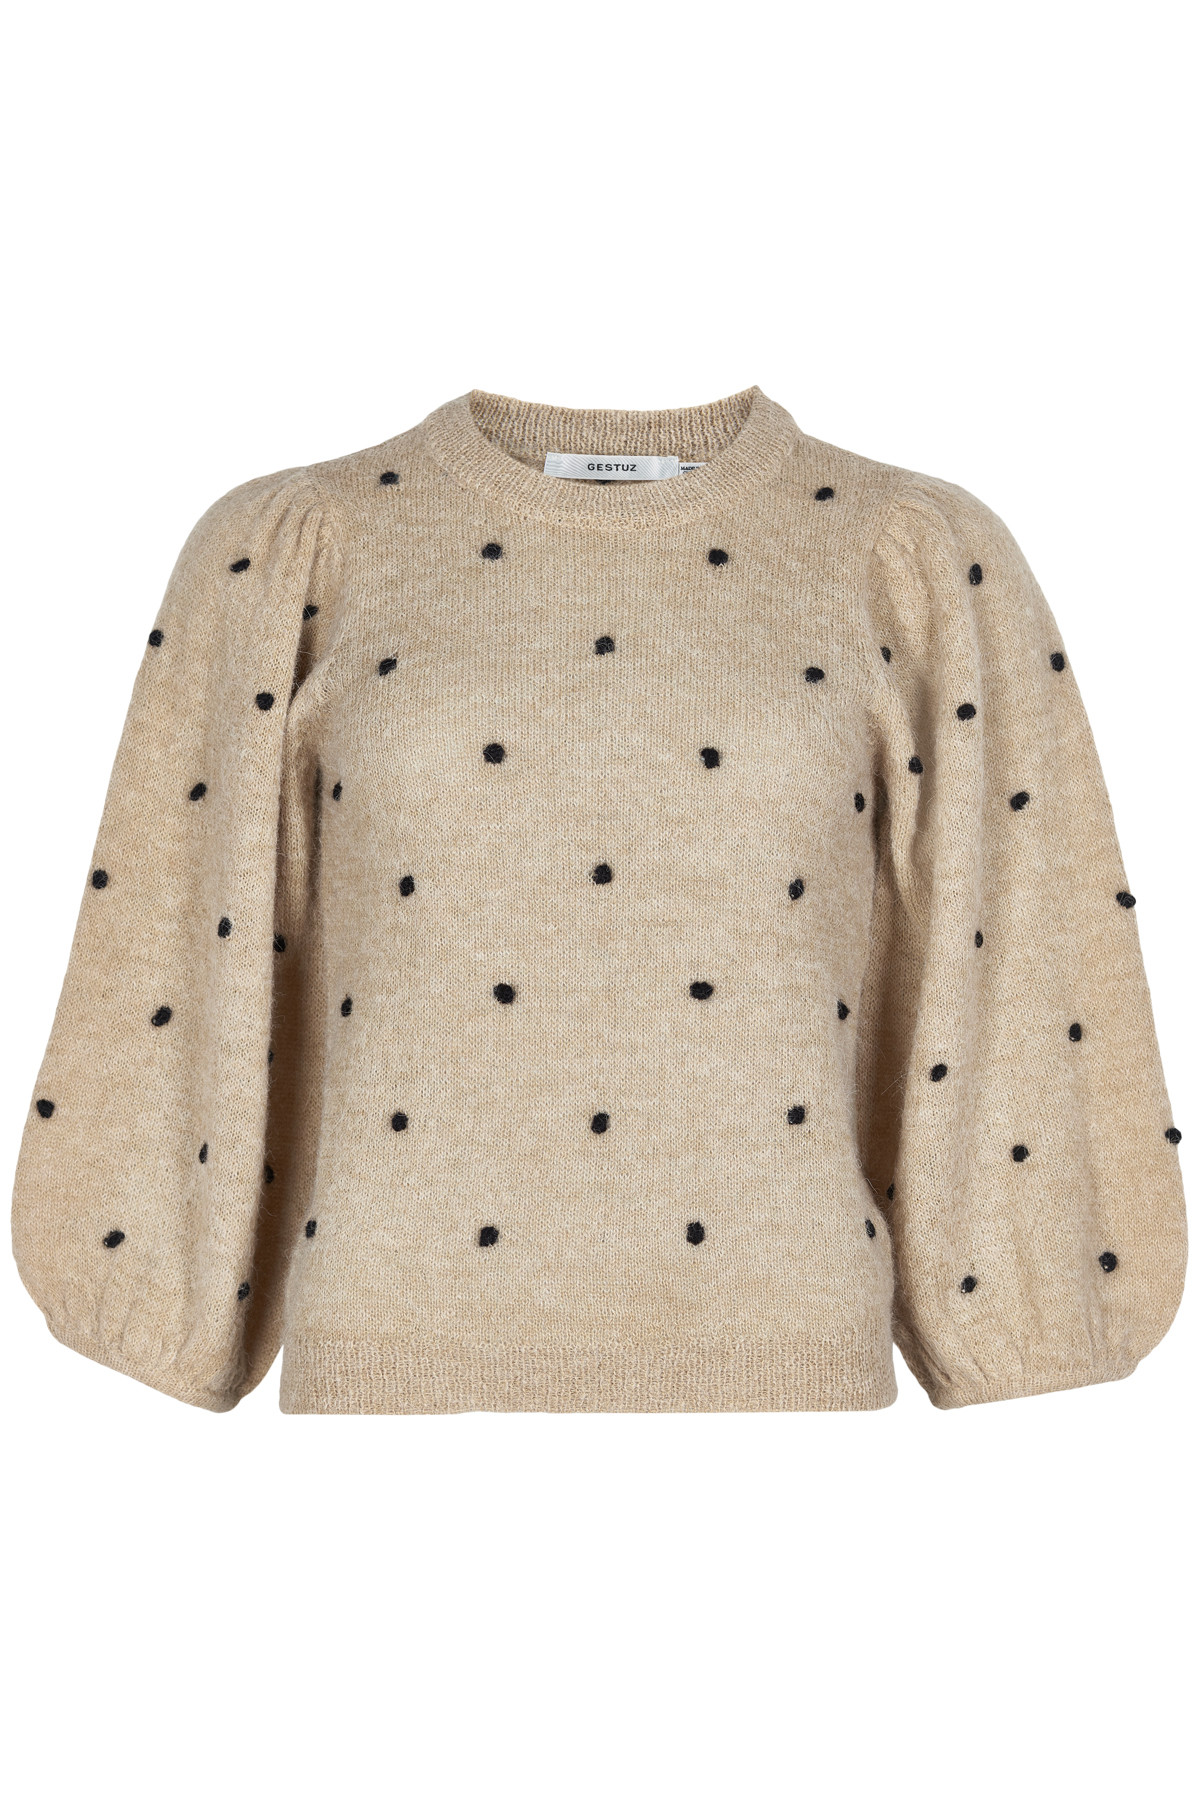 Image of   GESTUZ ASTANGZ PUFF STRIK PULLOVER 10904301 90680 (Safari 90680, XL)